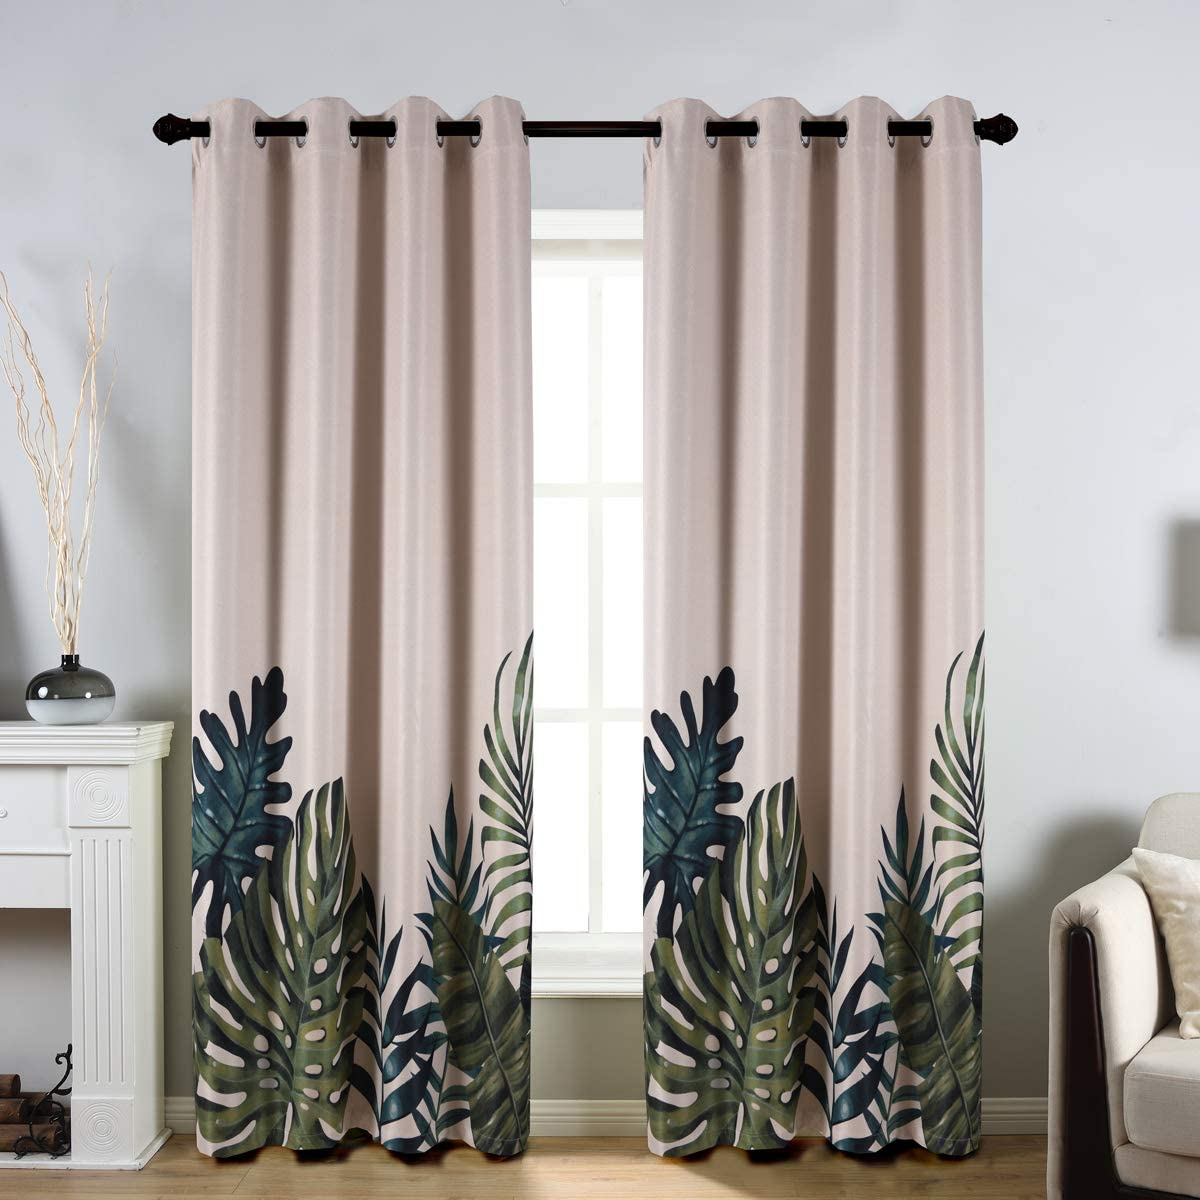 """Taisier Home Palm Leaves Print Exotic Style Nature Artwork,2 Panels Fashion Grommet Top Thermal Insulated Room Darkening Curtains,Printing Curtain Leaves(84"""" Print Curtain)"""